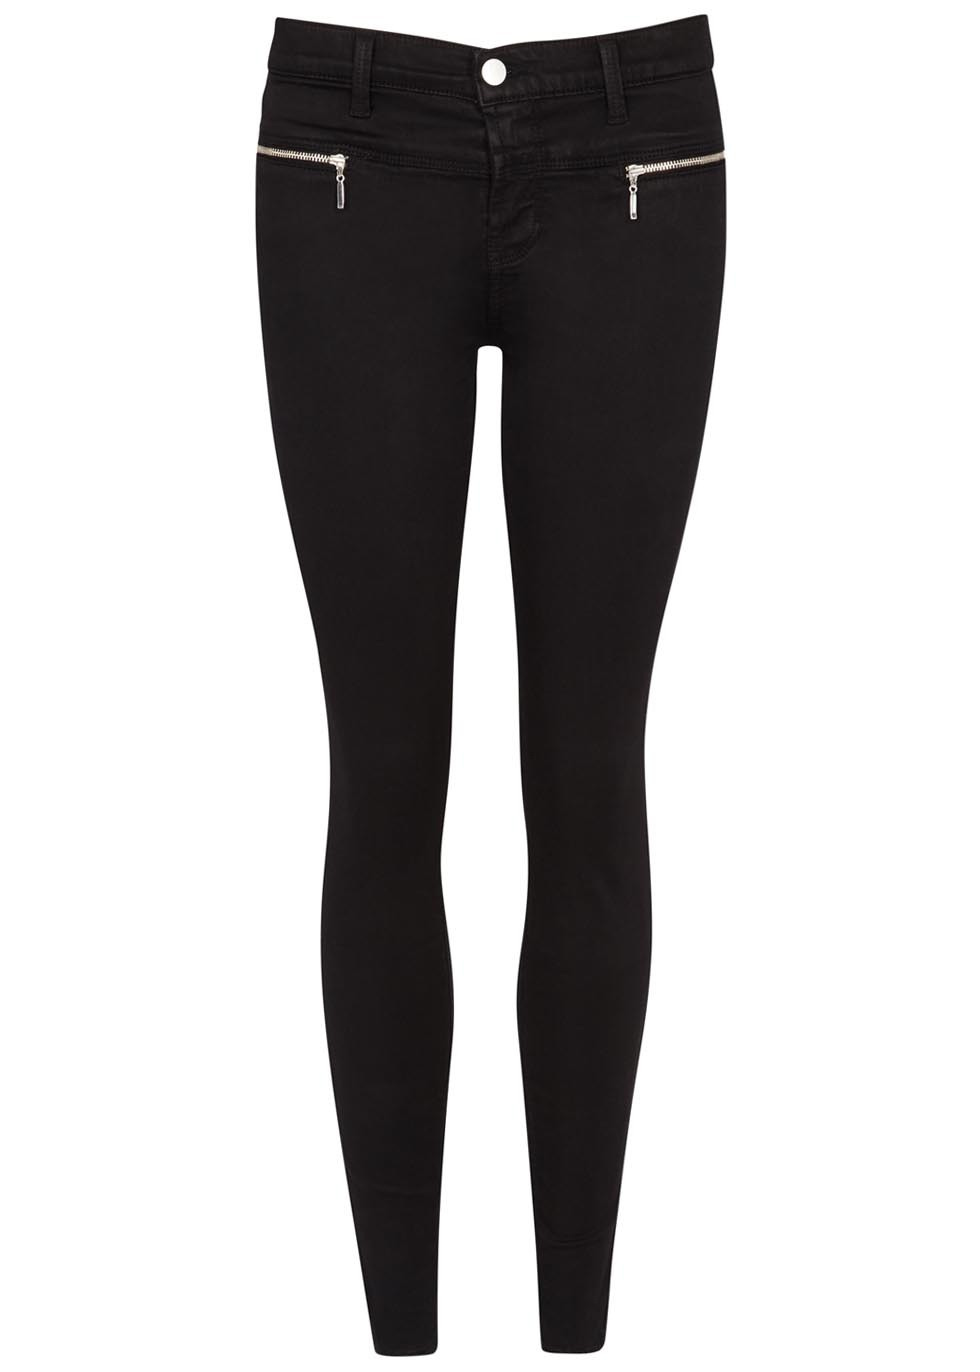 Miranda Black Skinny Jeans - style: skinny leg; length: standard; pattern: plain; waist: mid/regular rise; predominant colour: black; occasions: casual; fibres: cotton - mix; texture group: denim; pattern type: fabric; season: s/s 2016